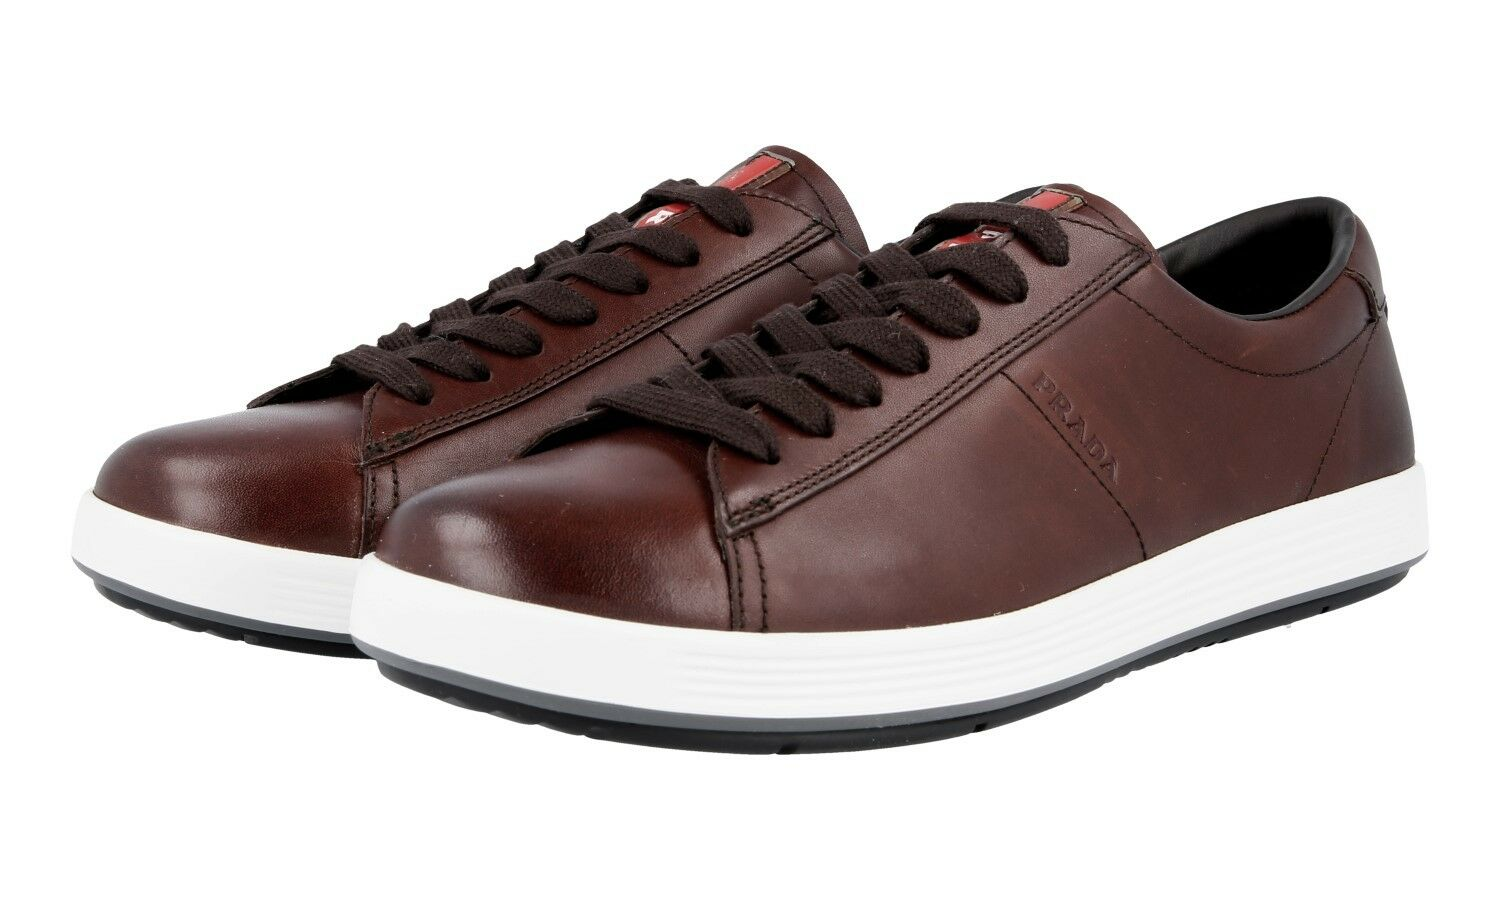 AUTHENTIC LUXURY PRADA SNEAKERS SHOES SHOES SHOES 4E2860 BROWN NEW US 8 EU 41 41,5 3802ce